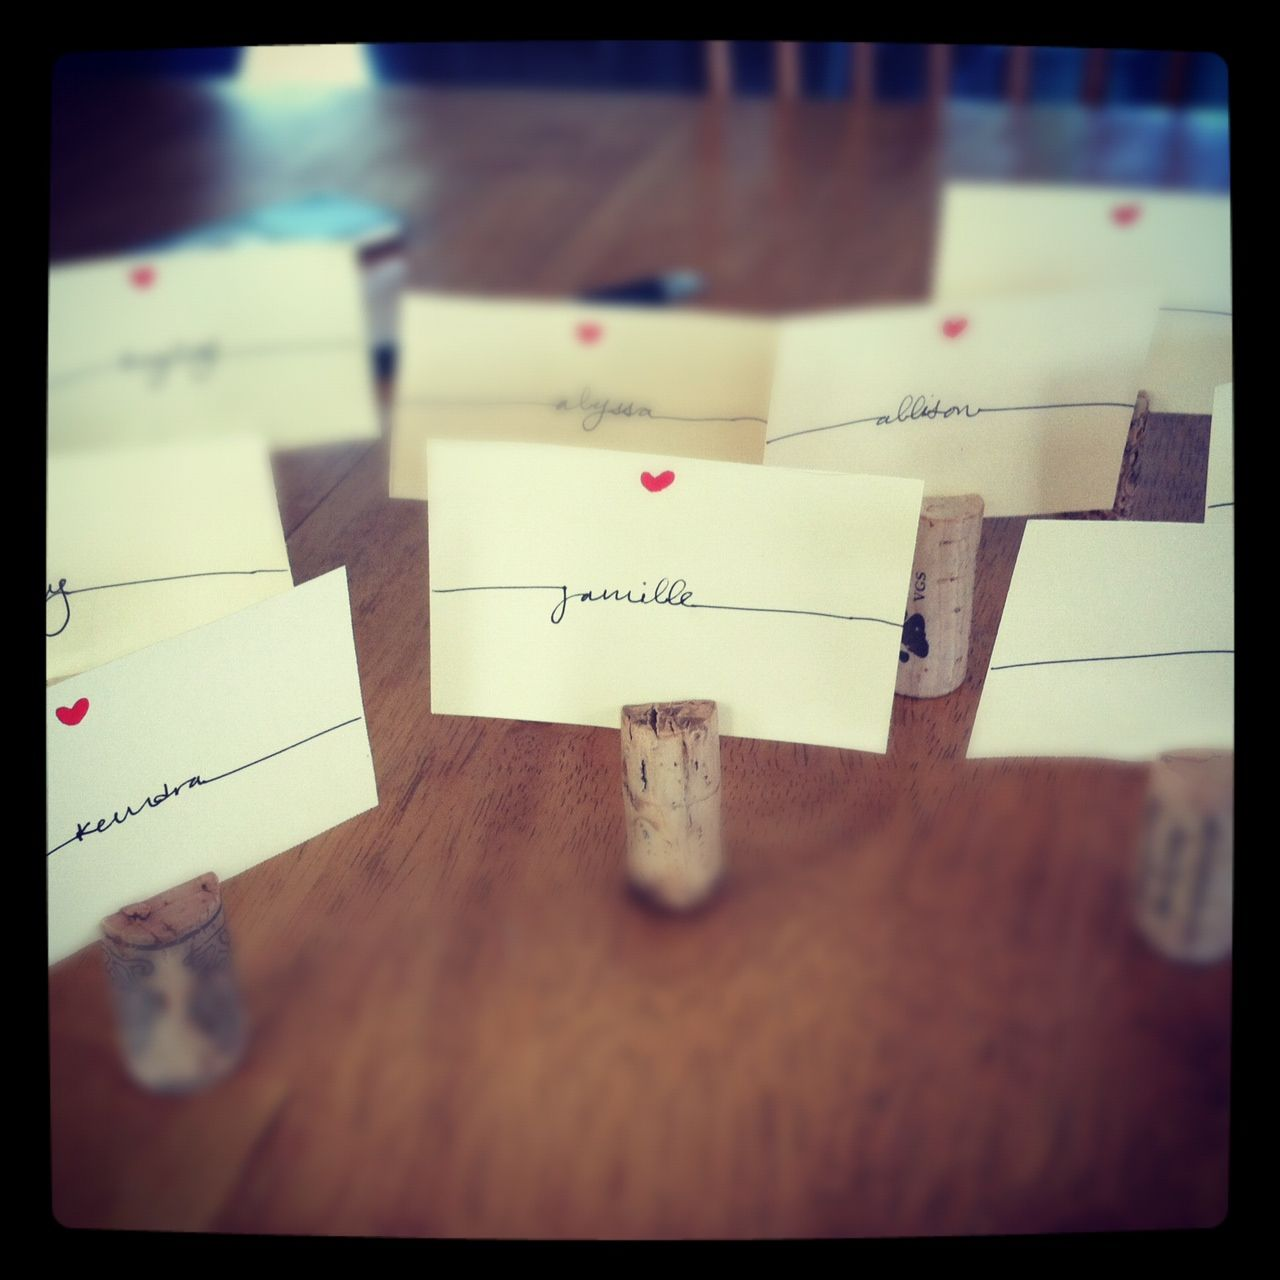 Wonderful Dinner Party Name Ideas Part - 13: My Homemade Dinner Party Name Tags